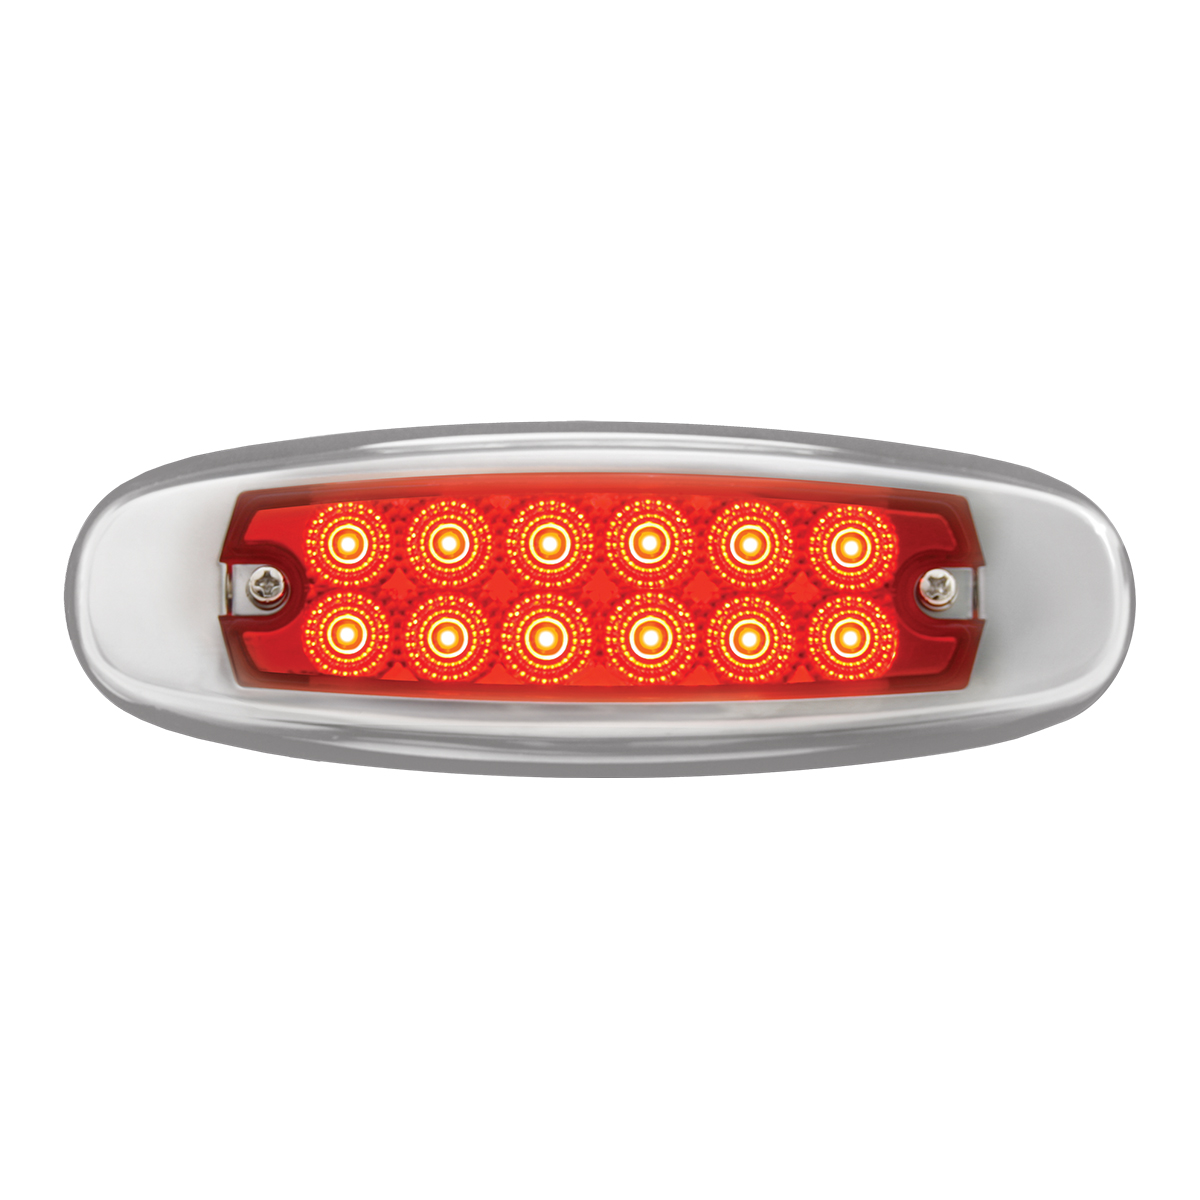 78567 Ultra Thin Spyder LED Marker Light w/ Stainless Steel Bezel